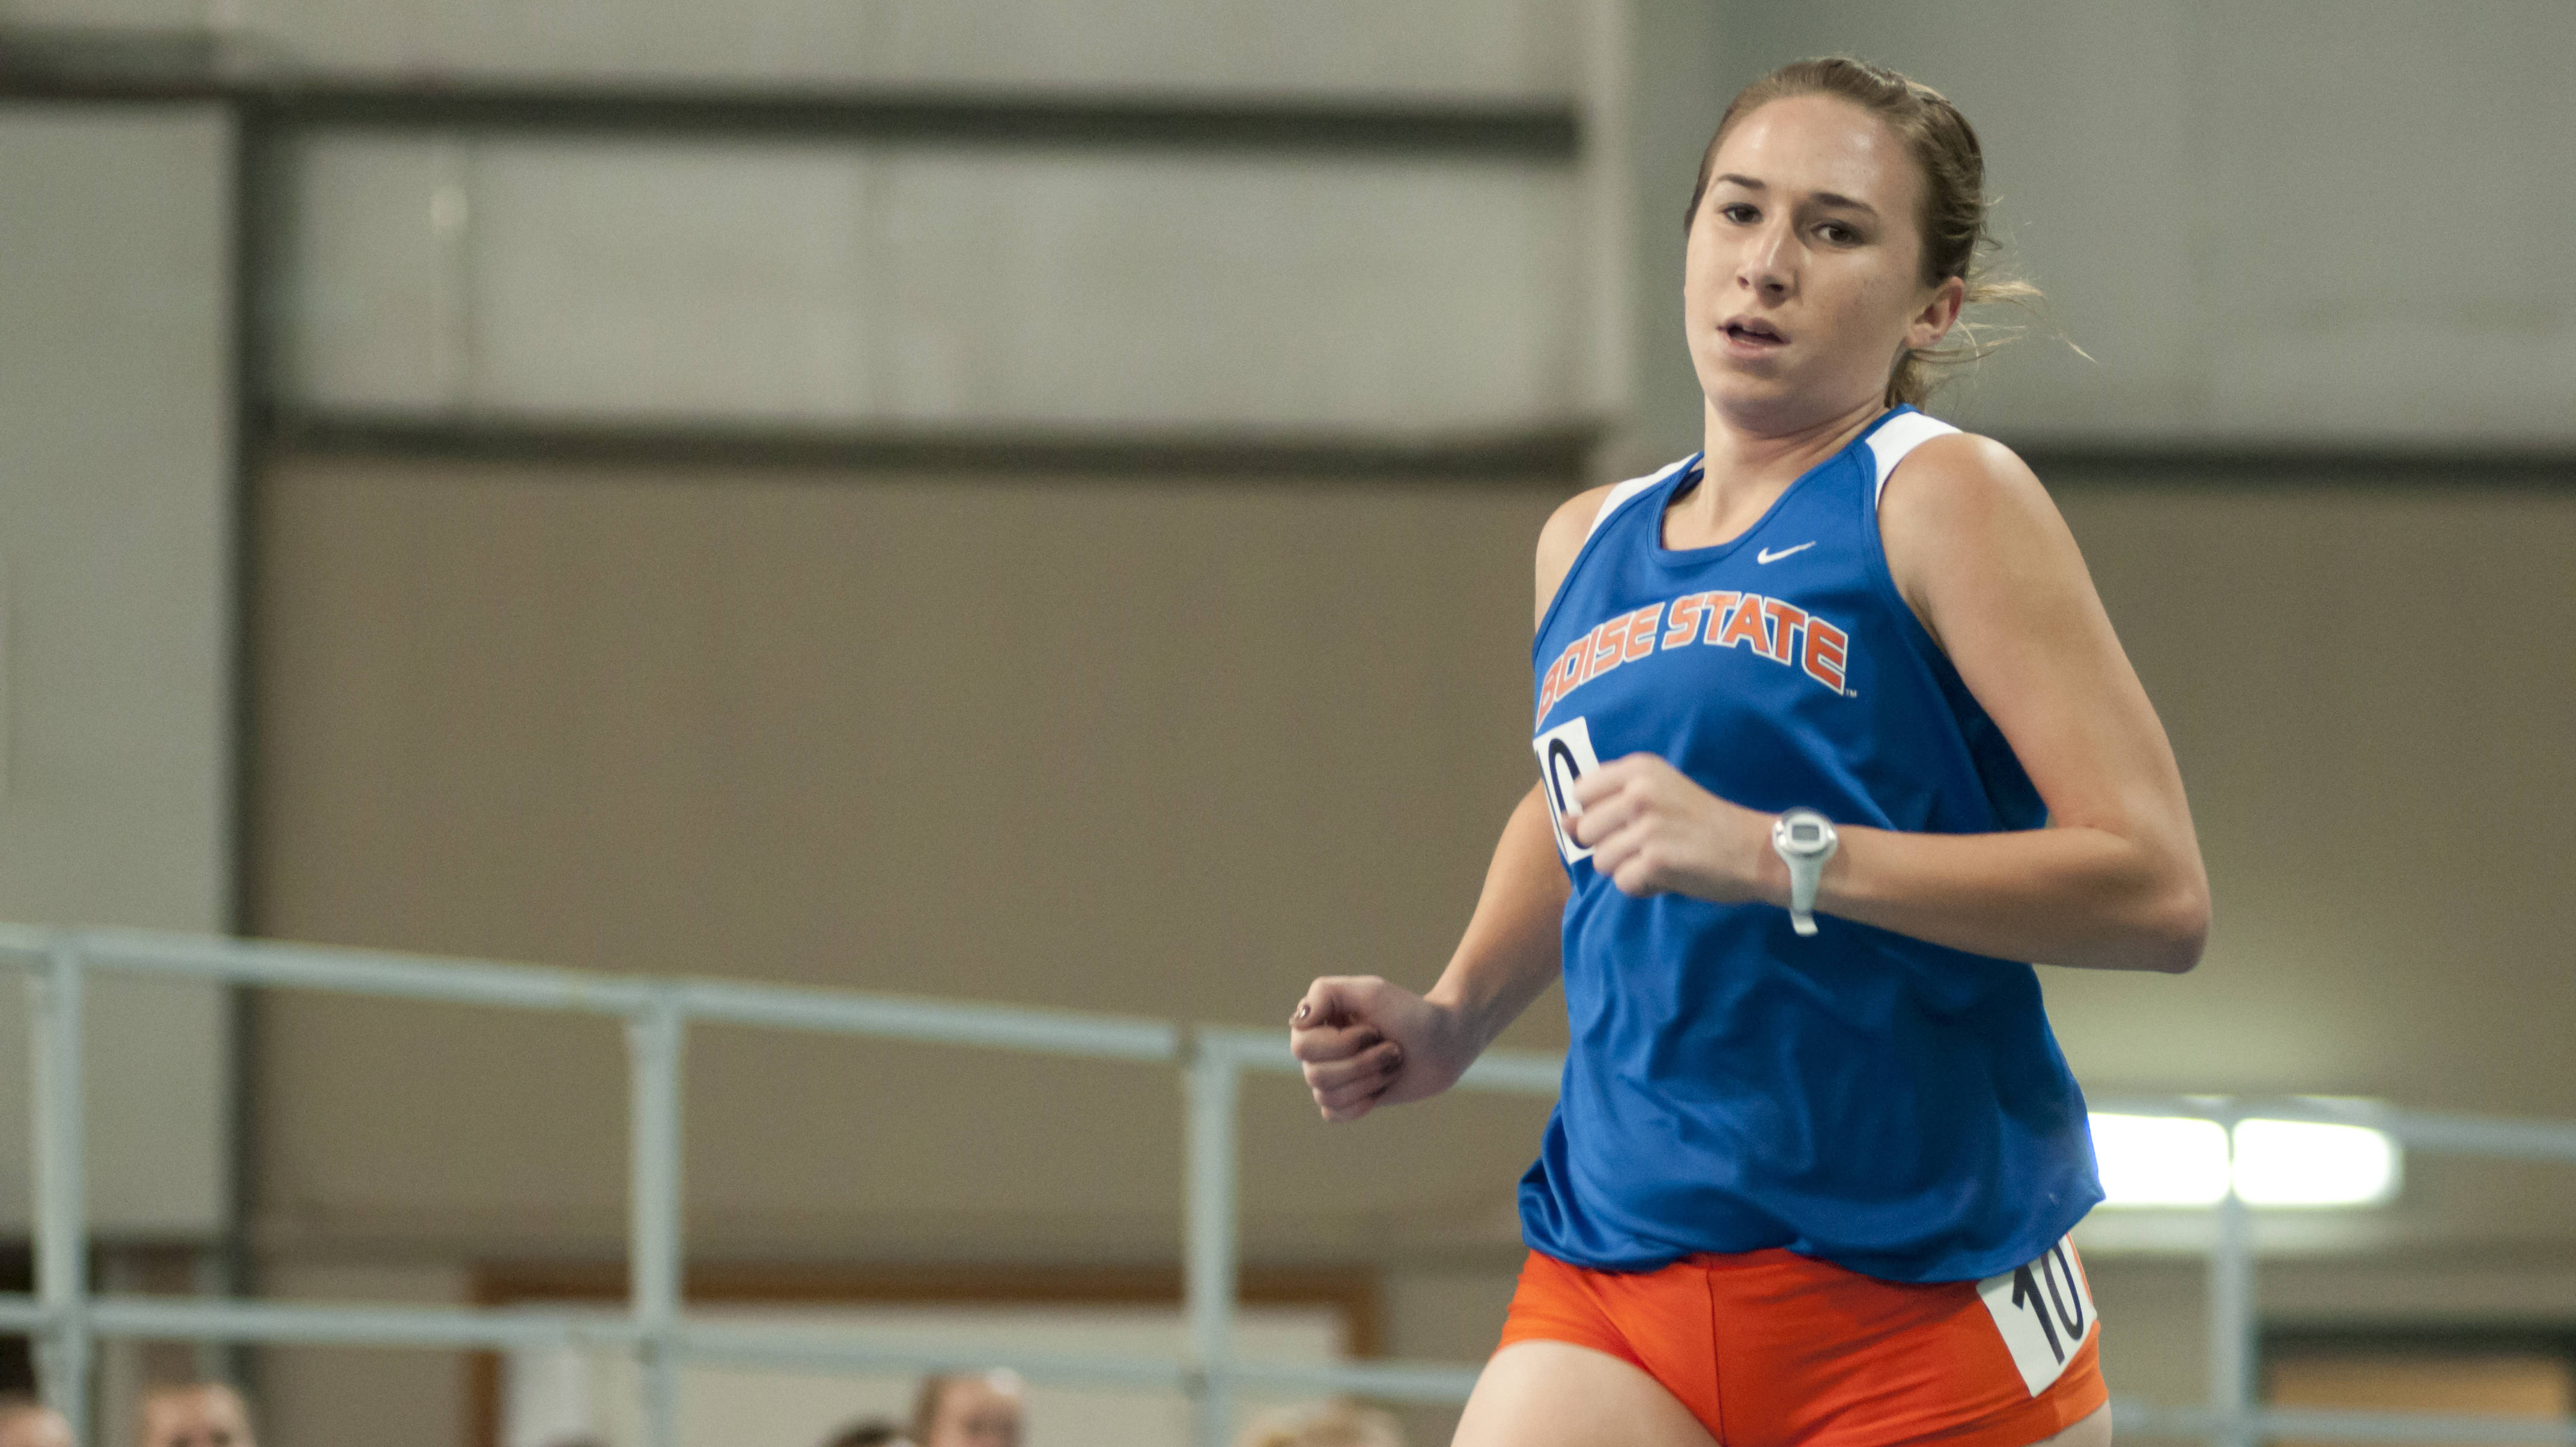 Danielle Zehrung finished first in the mile on Friday